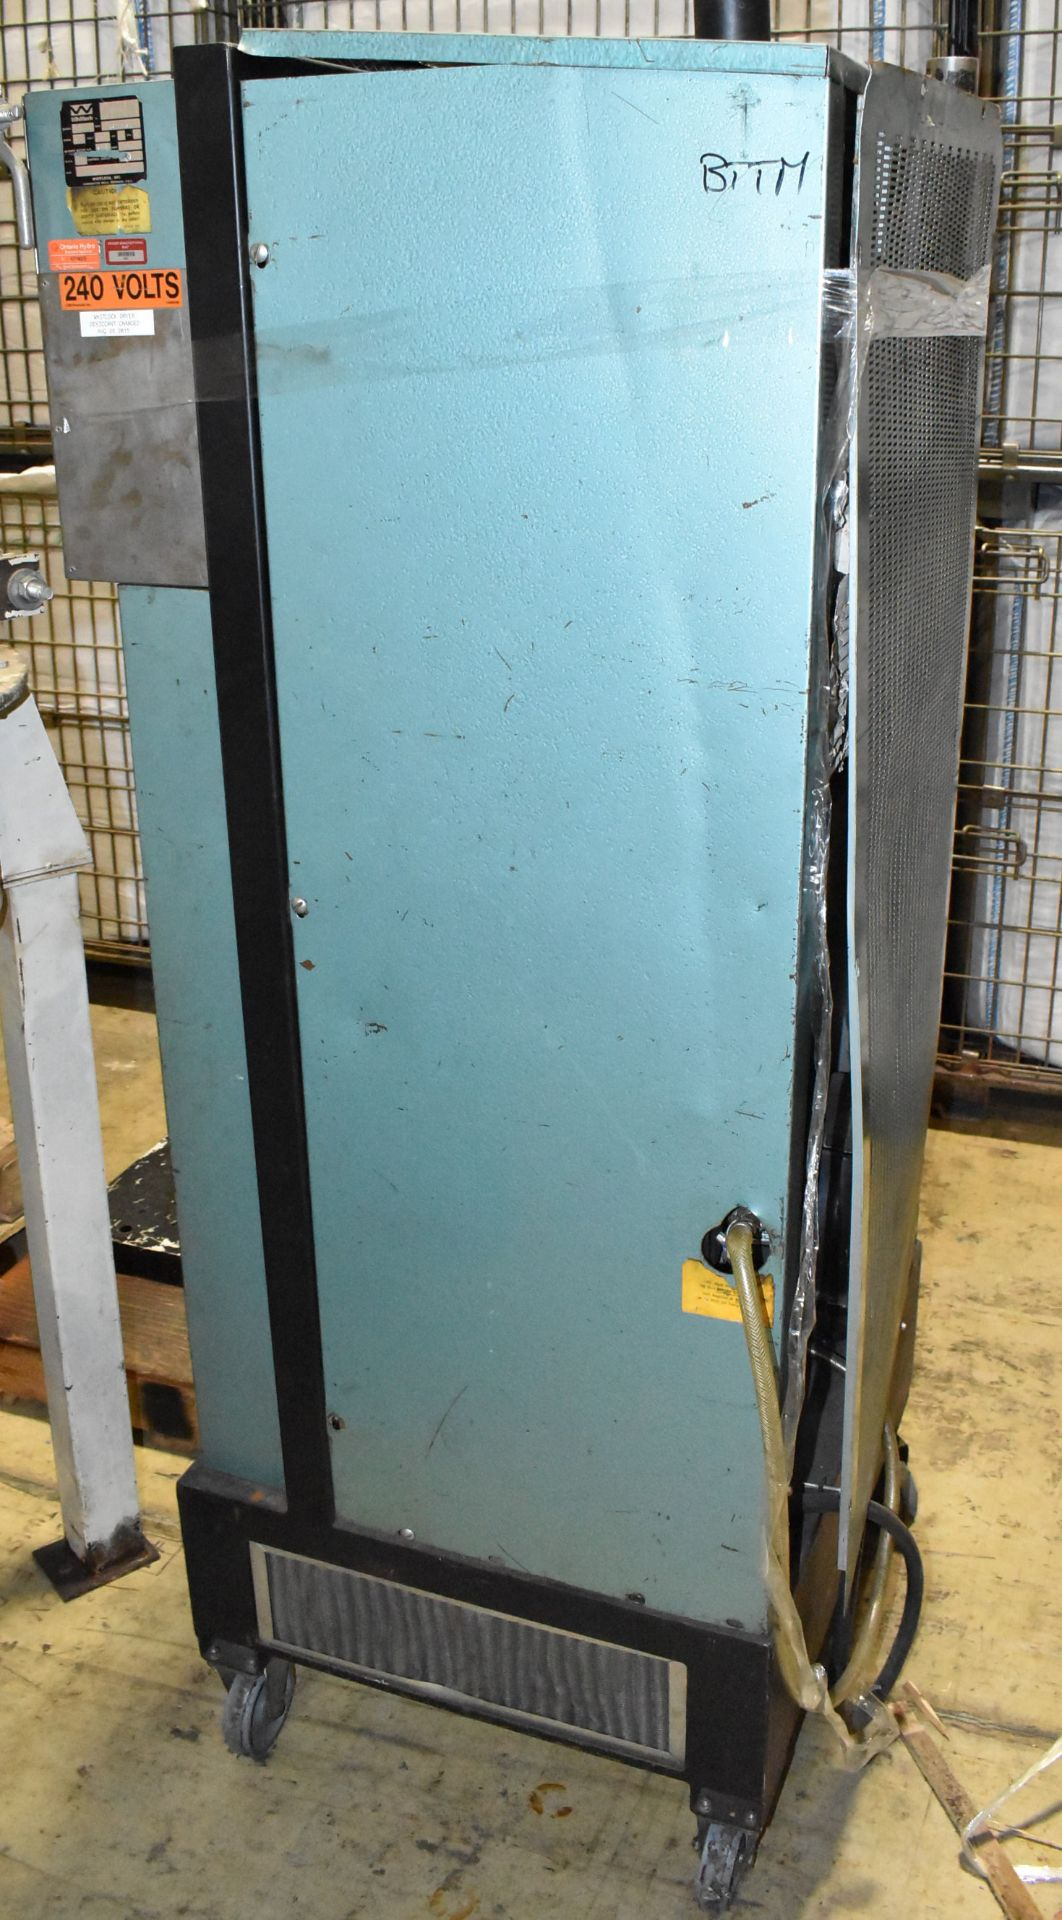 WHITLOCK 50CL DEHUMIDIFYING DRYER, S/N: 7810148 (LOCATED IN BRAMPTON, ON) [RIGGING FEES FOR LOT #106 - Image 2 of 3